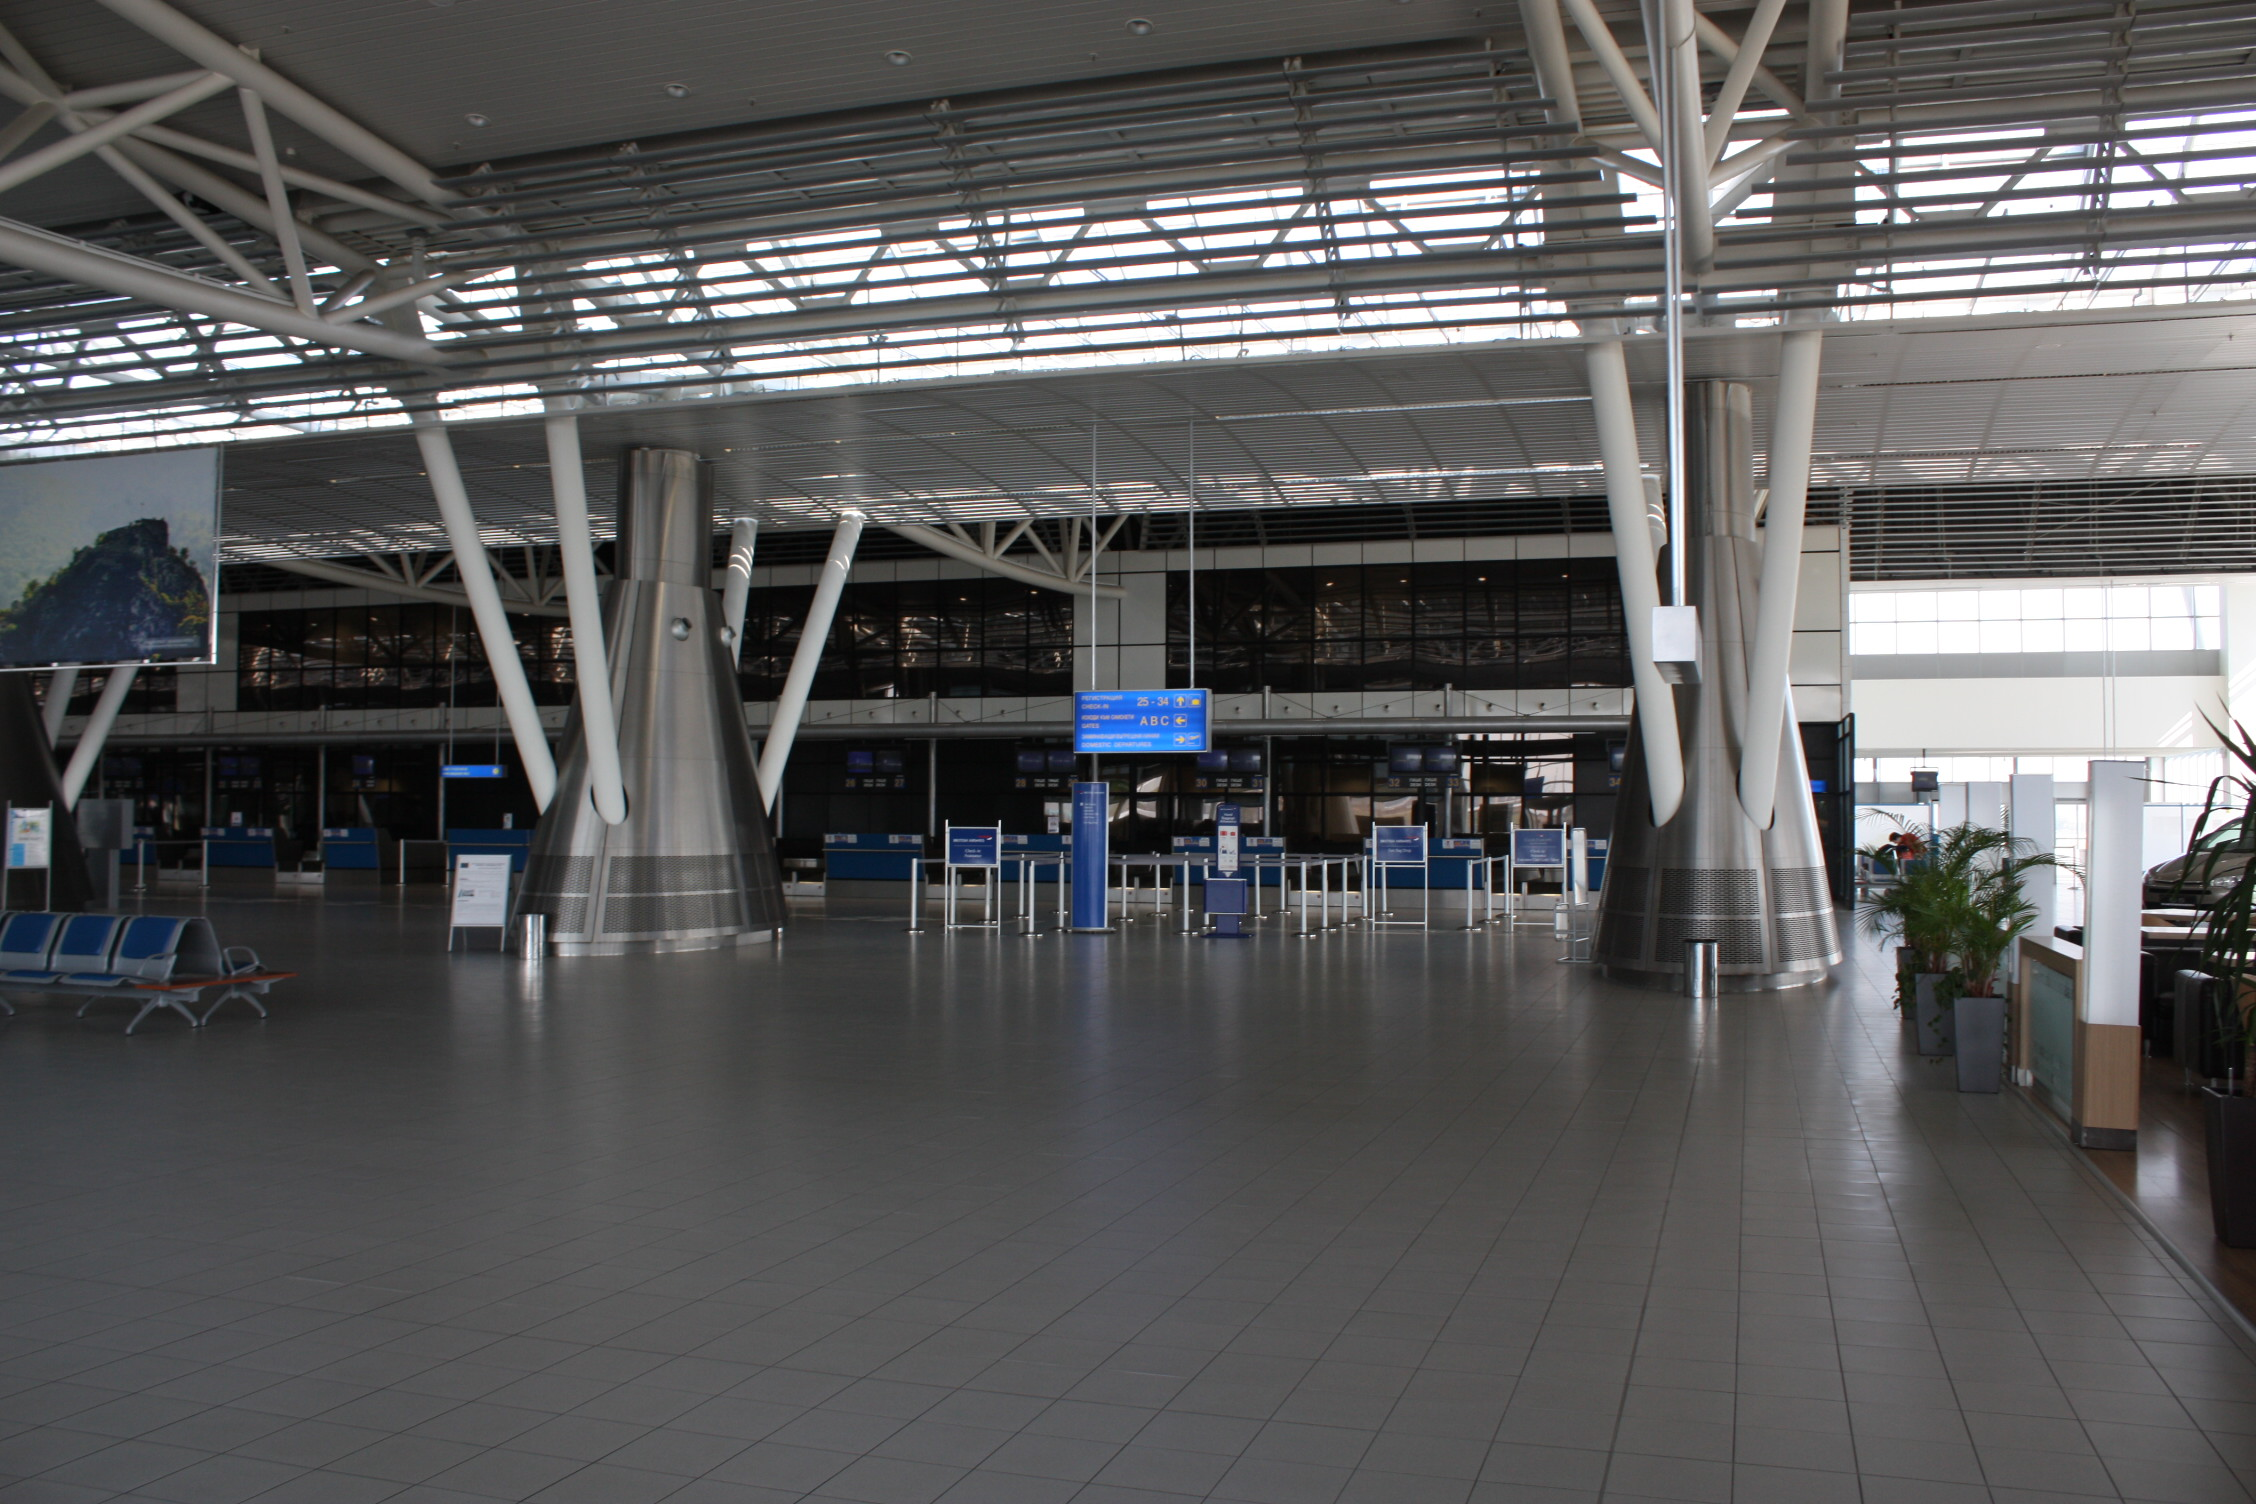 File:Inside Sofia Airport 20090409 021.JPG - Wikimedia Commons